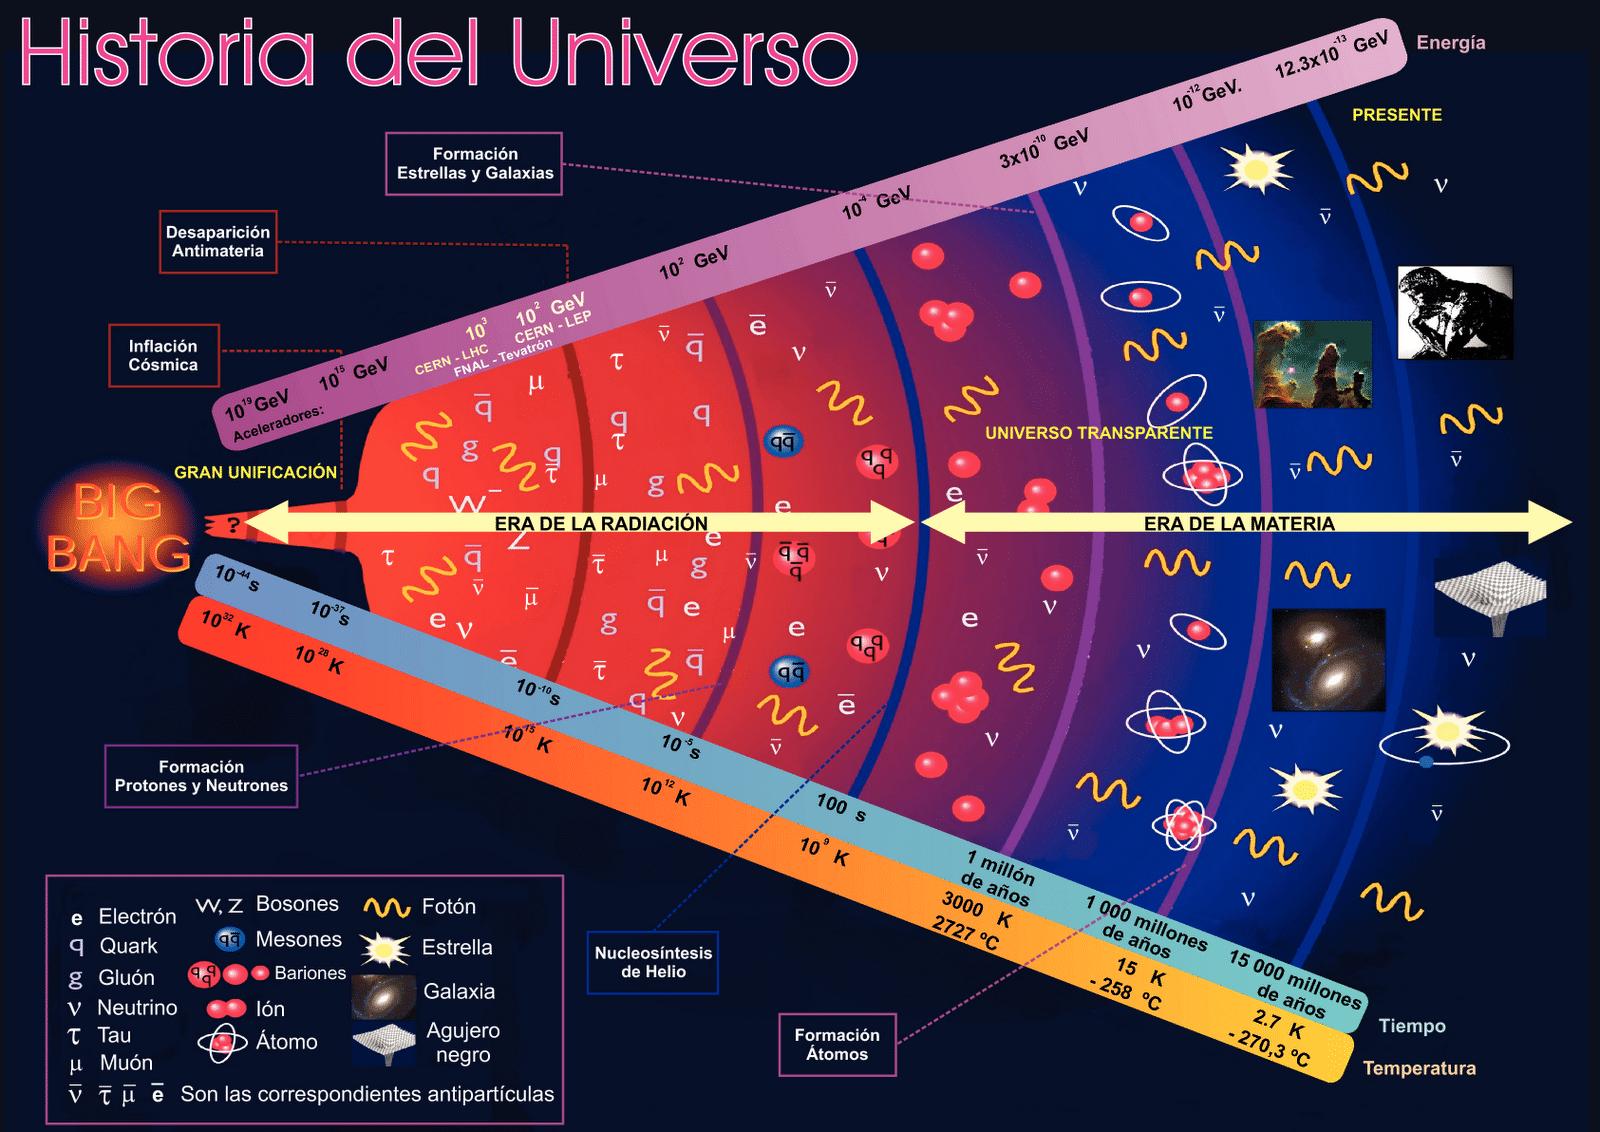 expansiondeluniverso123